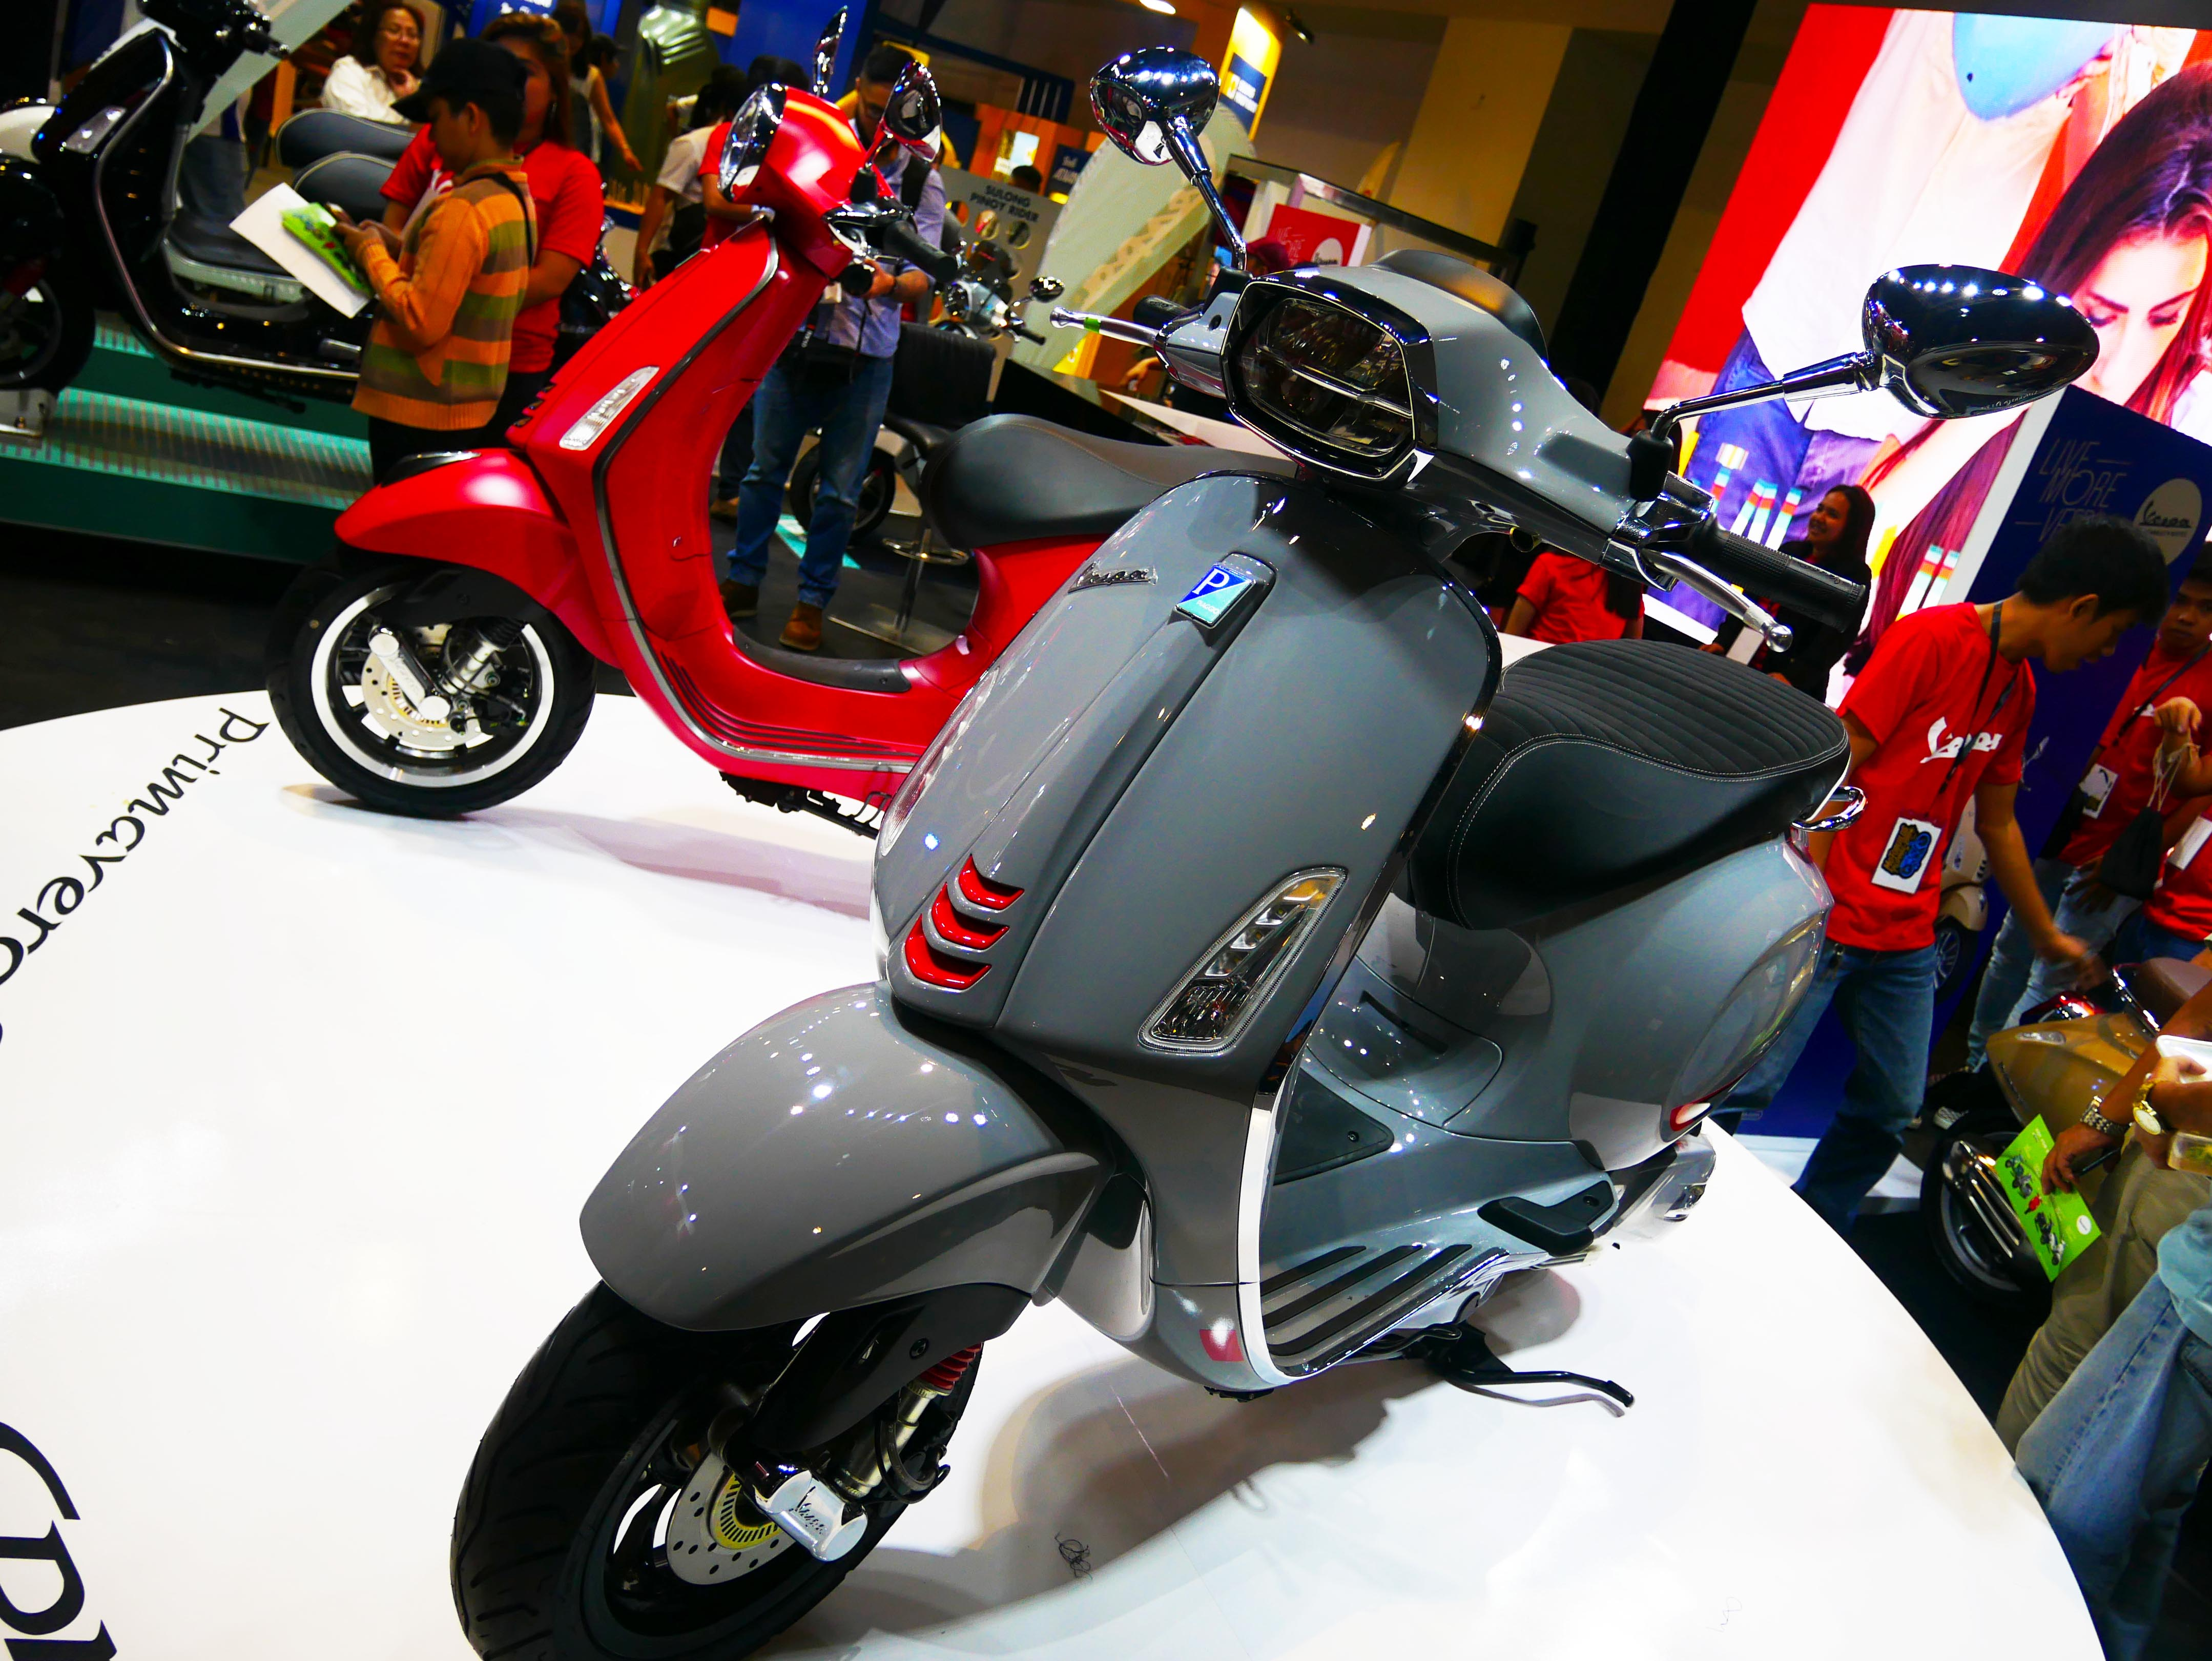 Motoitalia Launches New Vespa Primavera S And Vespa Sprint S